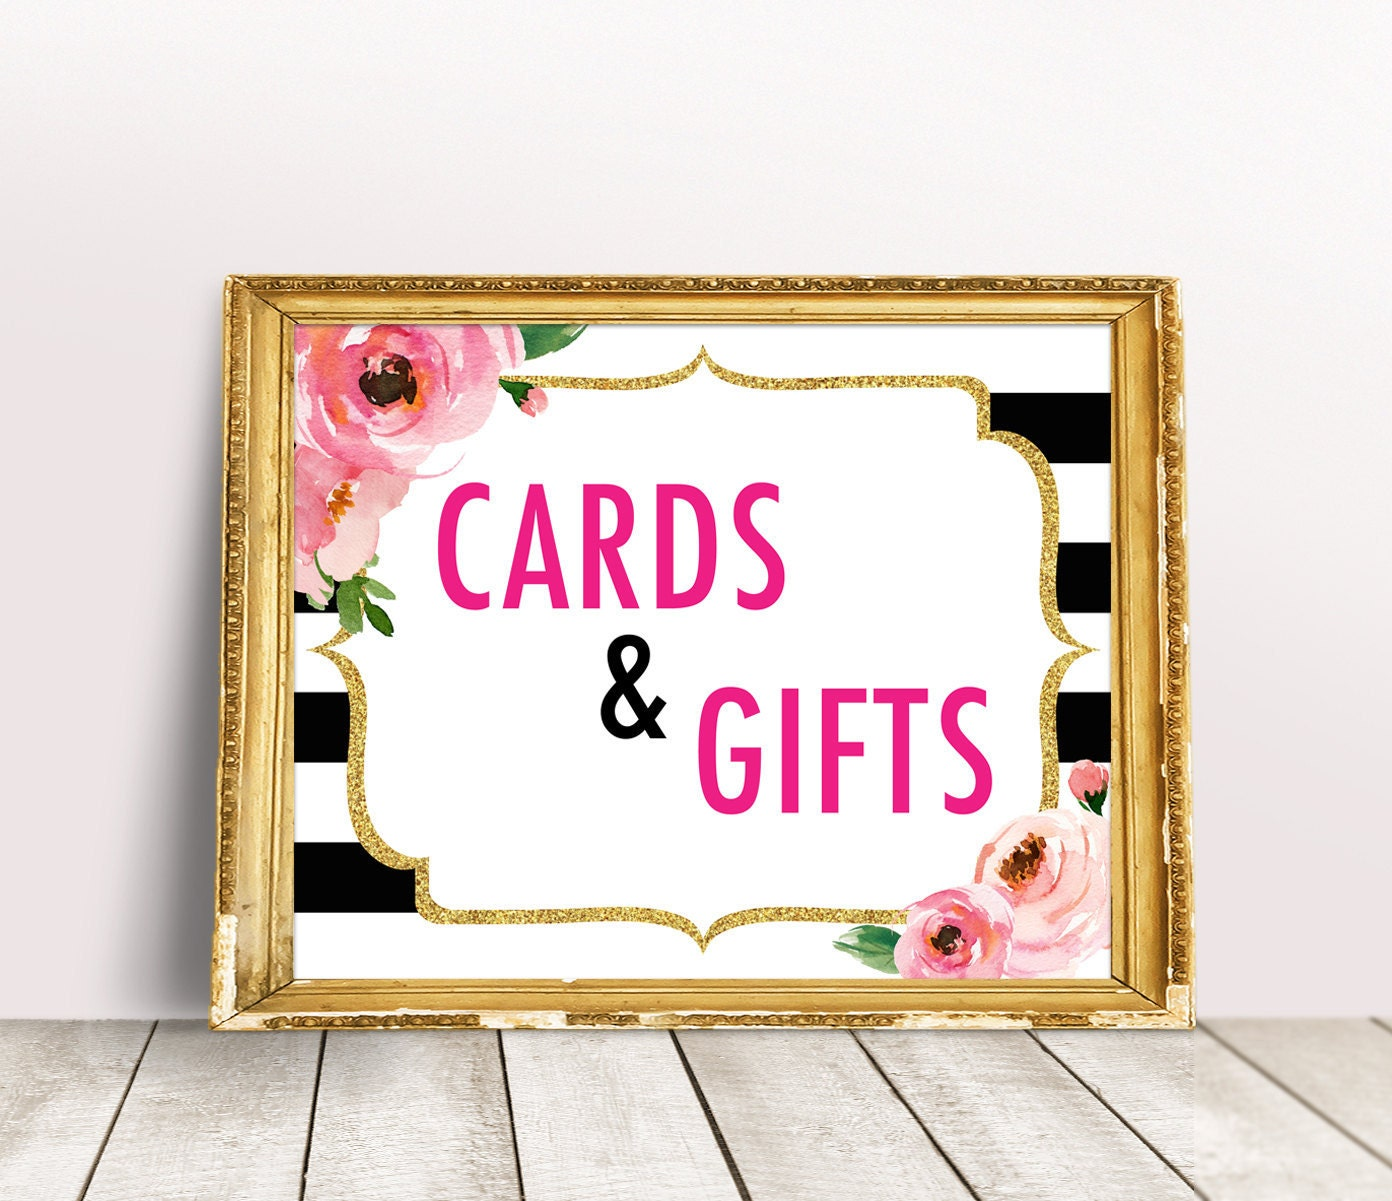 Online Gifts For Wedding: Cards And Gifts Sign Kate Bridal Shower Sign Spade Party